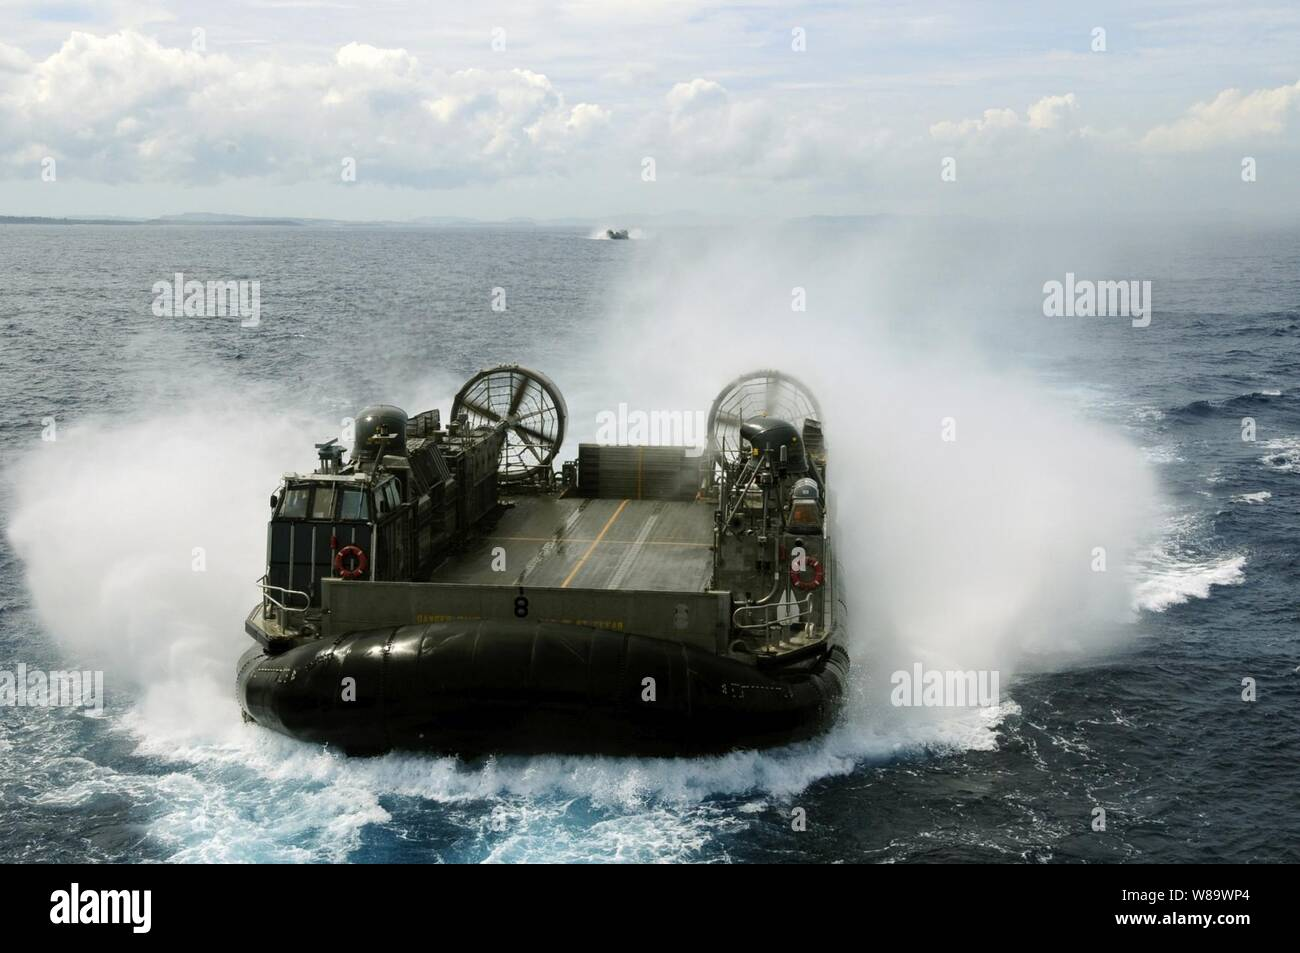 A landing craft air cushioned, also known as an LCAC, assigned to Assault Craft Unit 5, enters the well deck of the dock landing ship USS Harpers Ferry (LSD 49) on June 23, 2008.  The Harpers Ferry is part of the Essex Expeditionary Strike Group forward deployed to Sasebo, Japan. Stock Photo